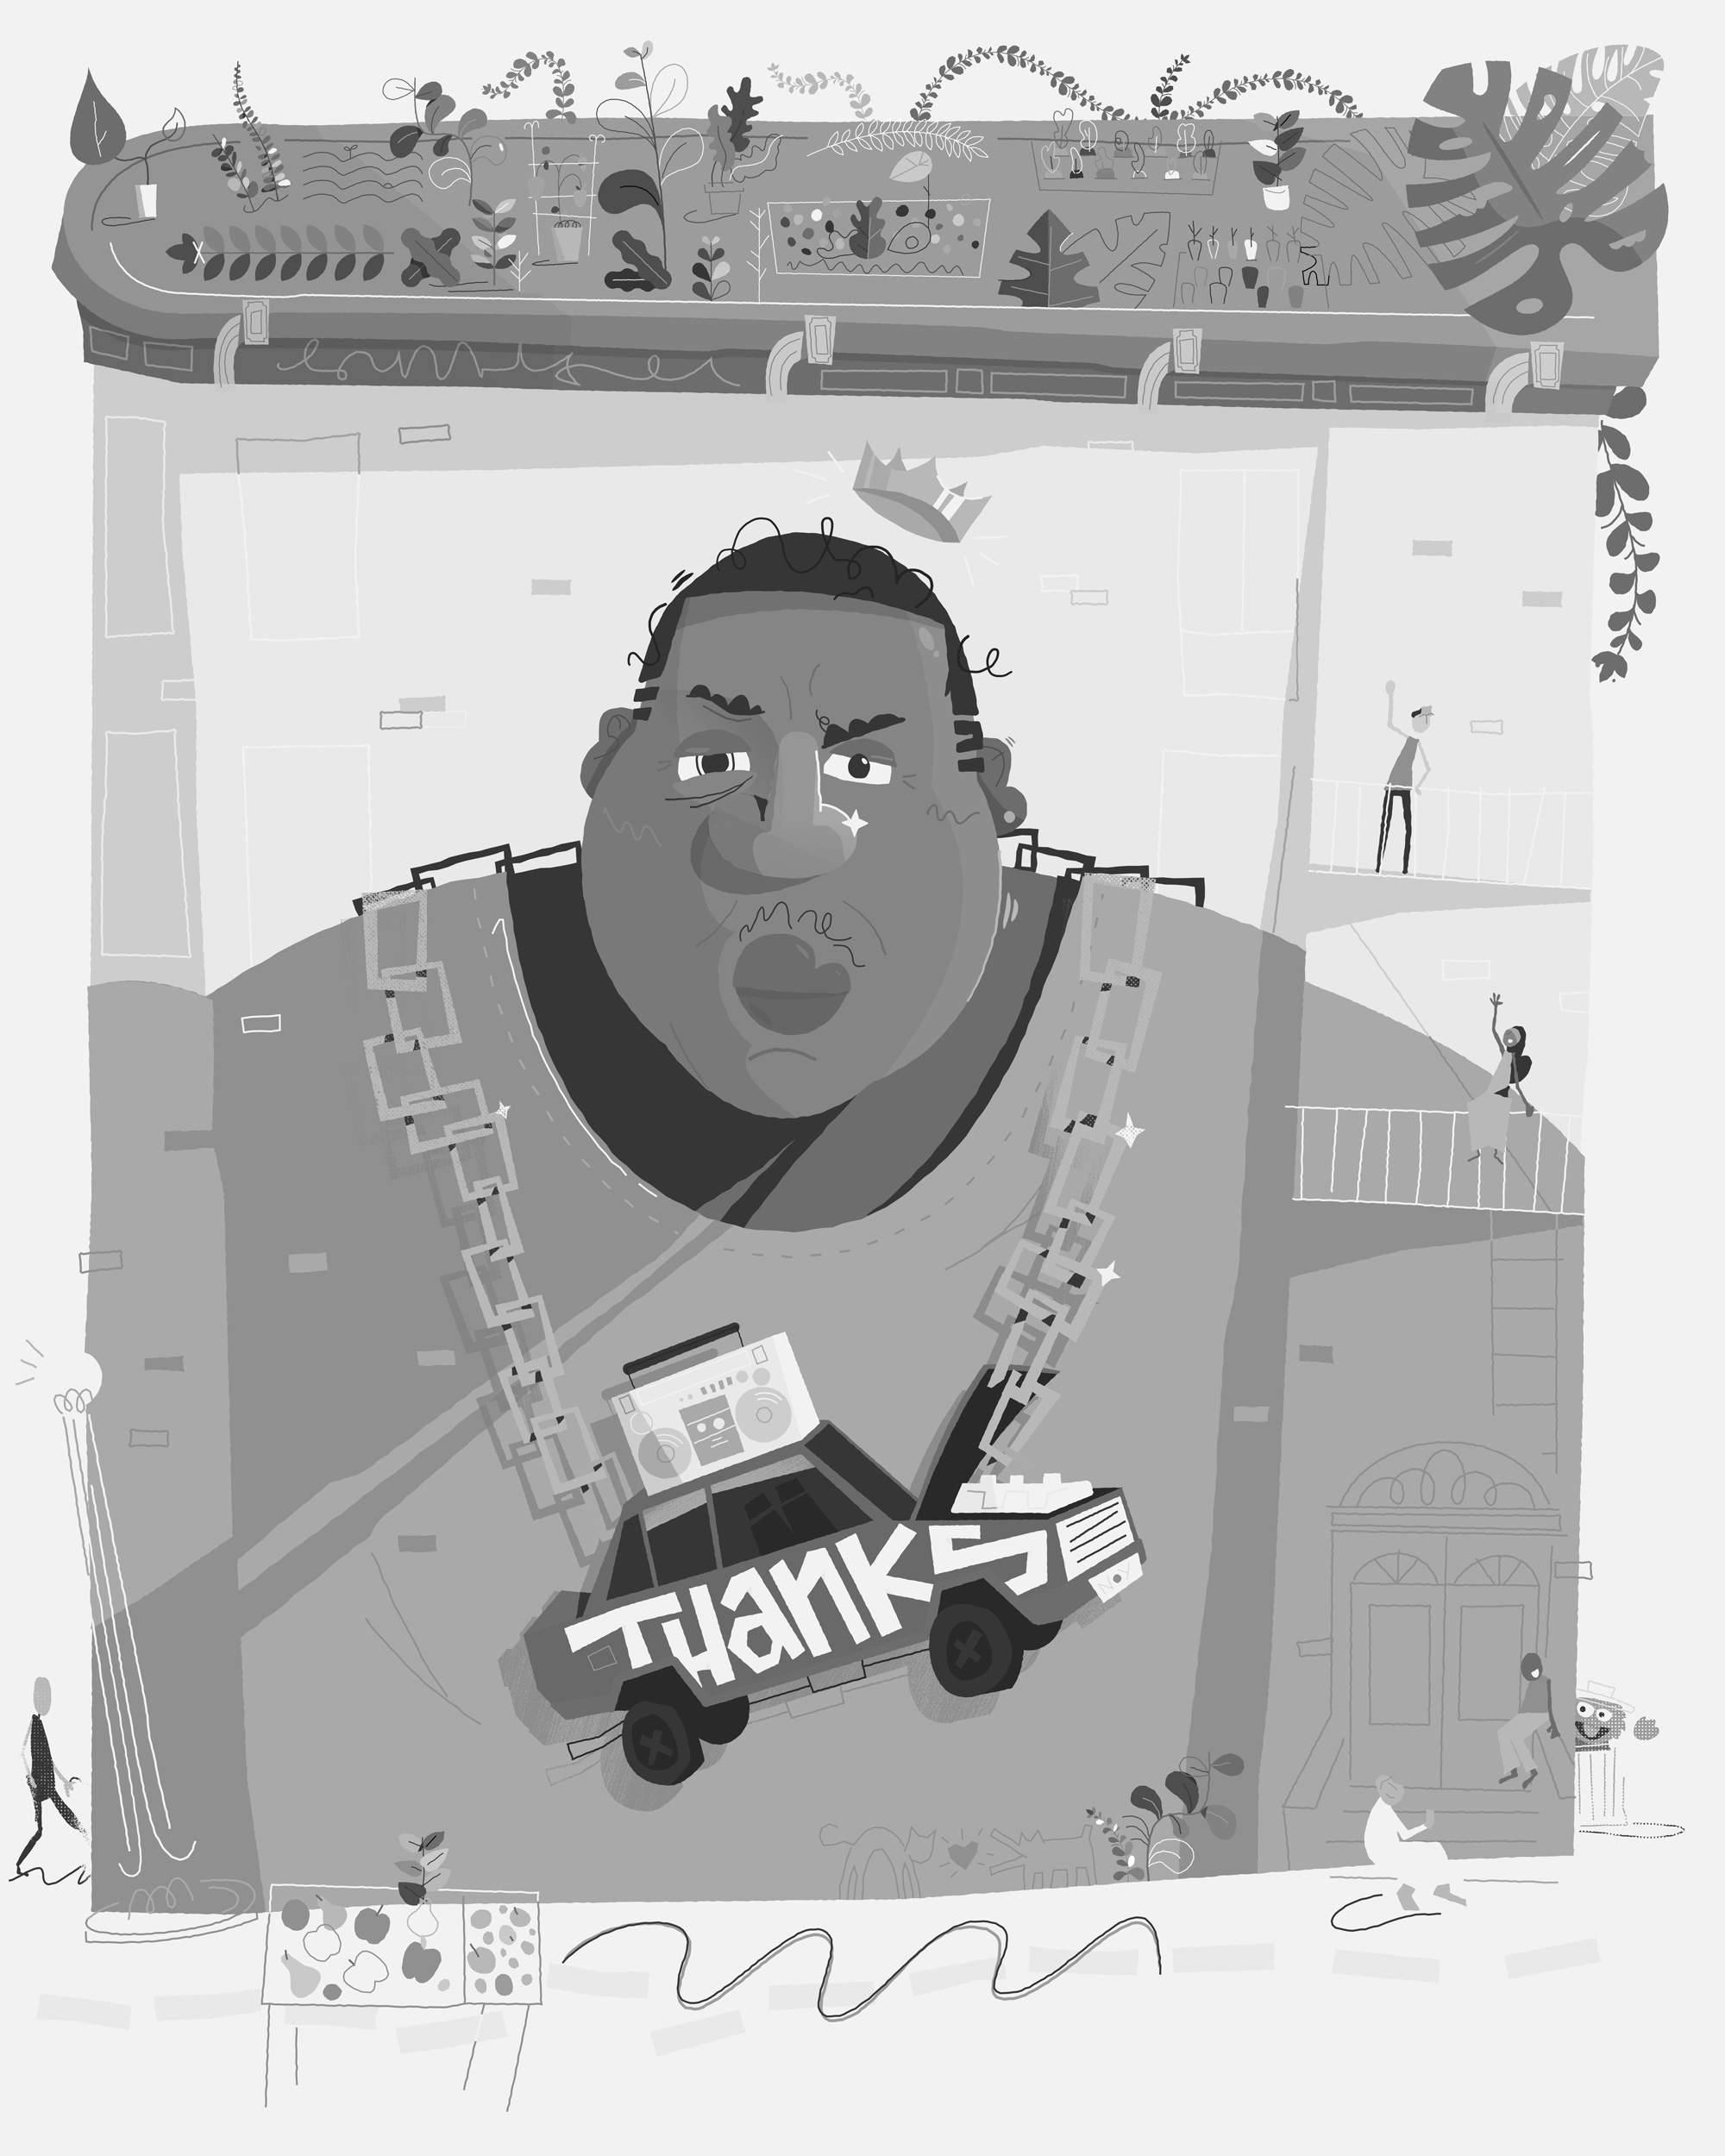 biggie-thanks-web2.jpg